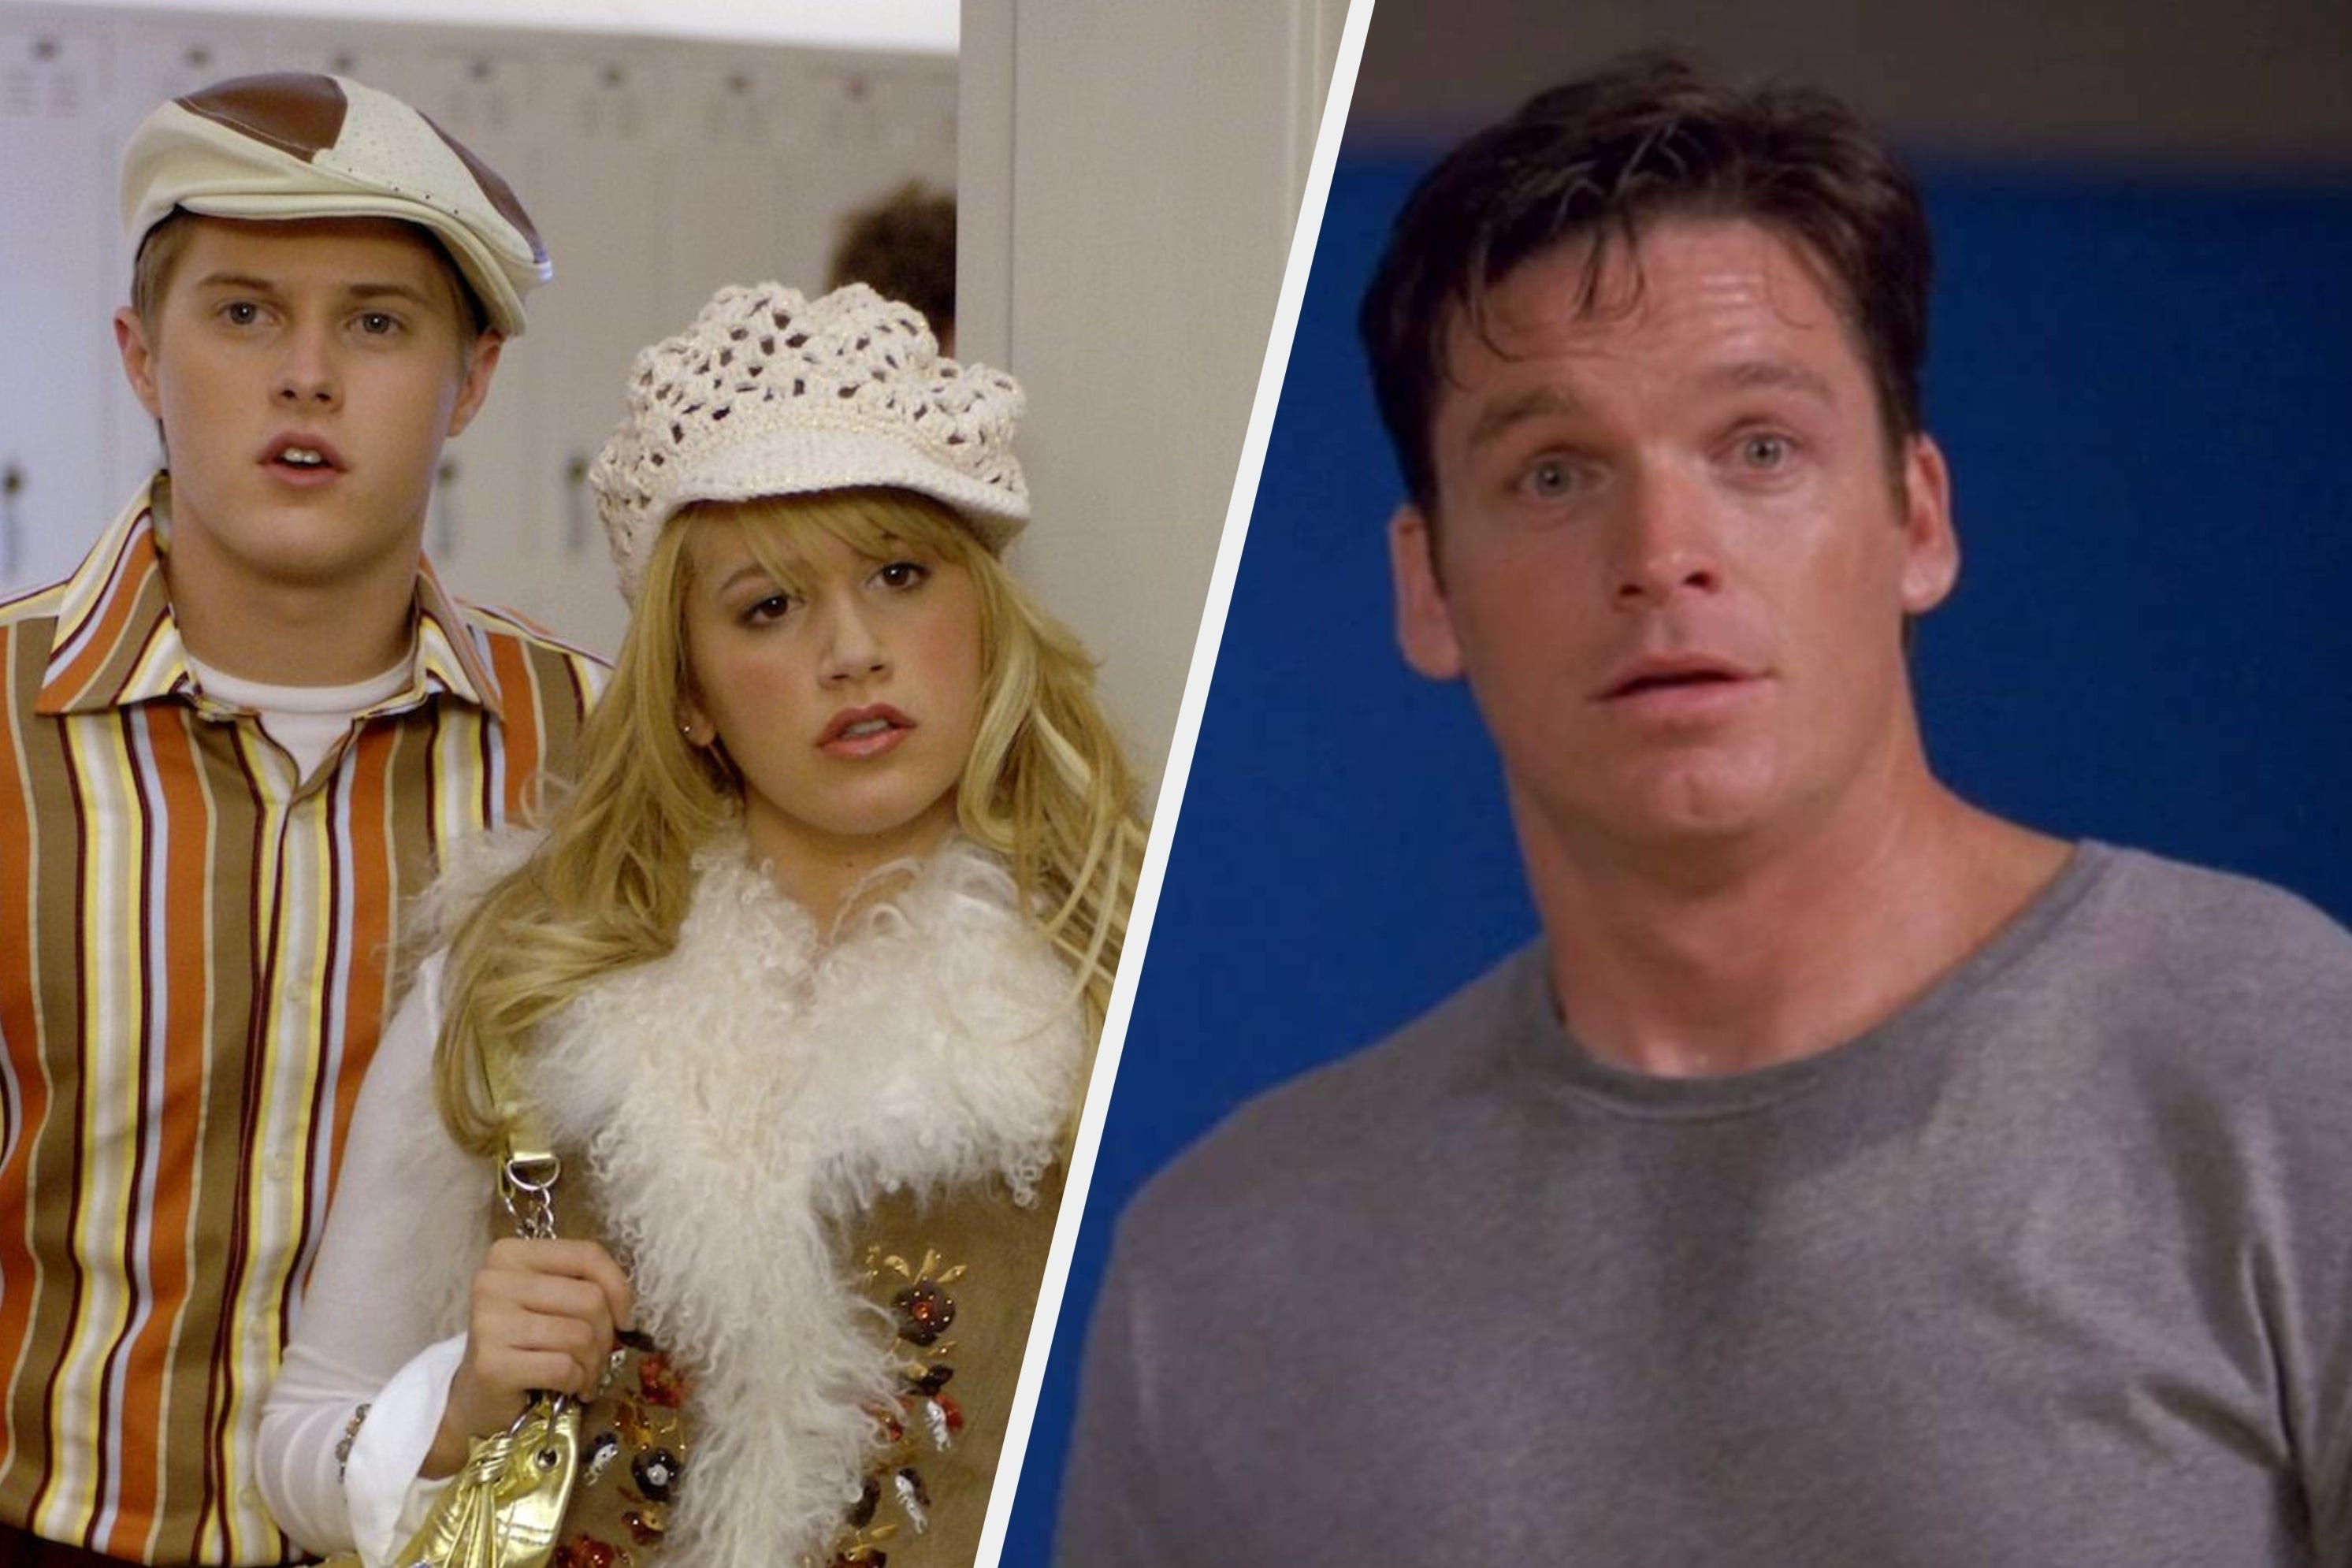 Ryan, Sharpay, and Coach Bolton looking confused